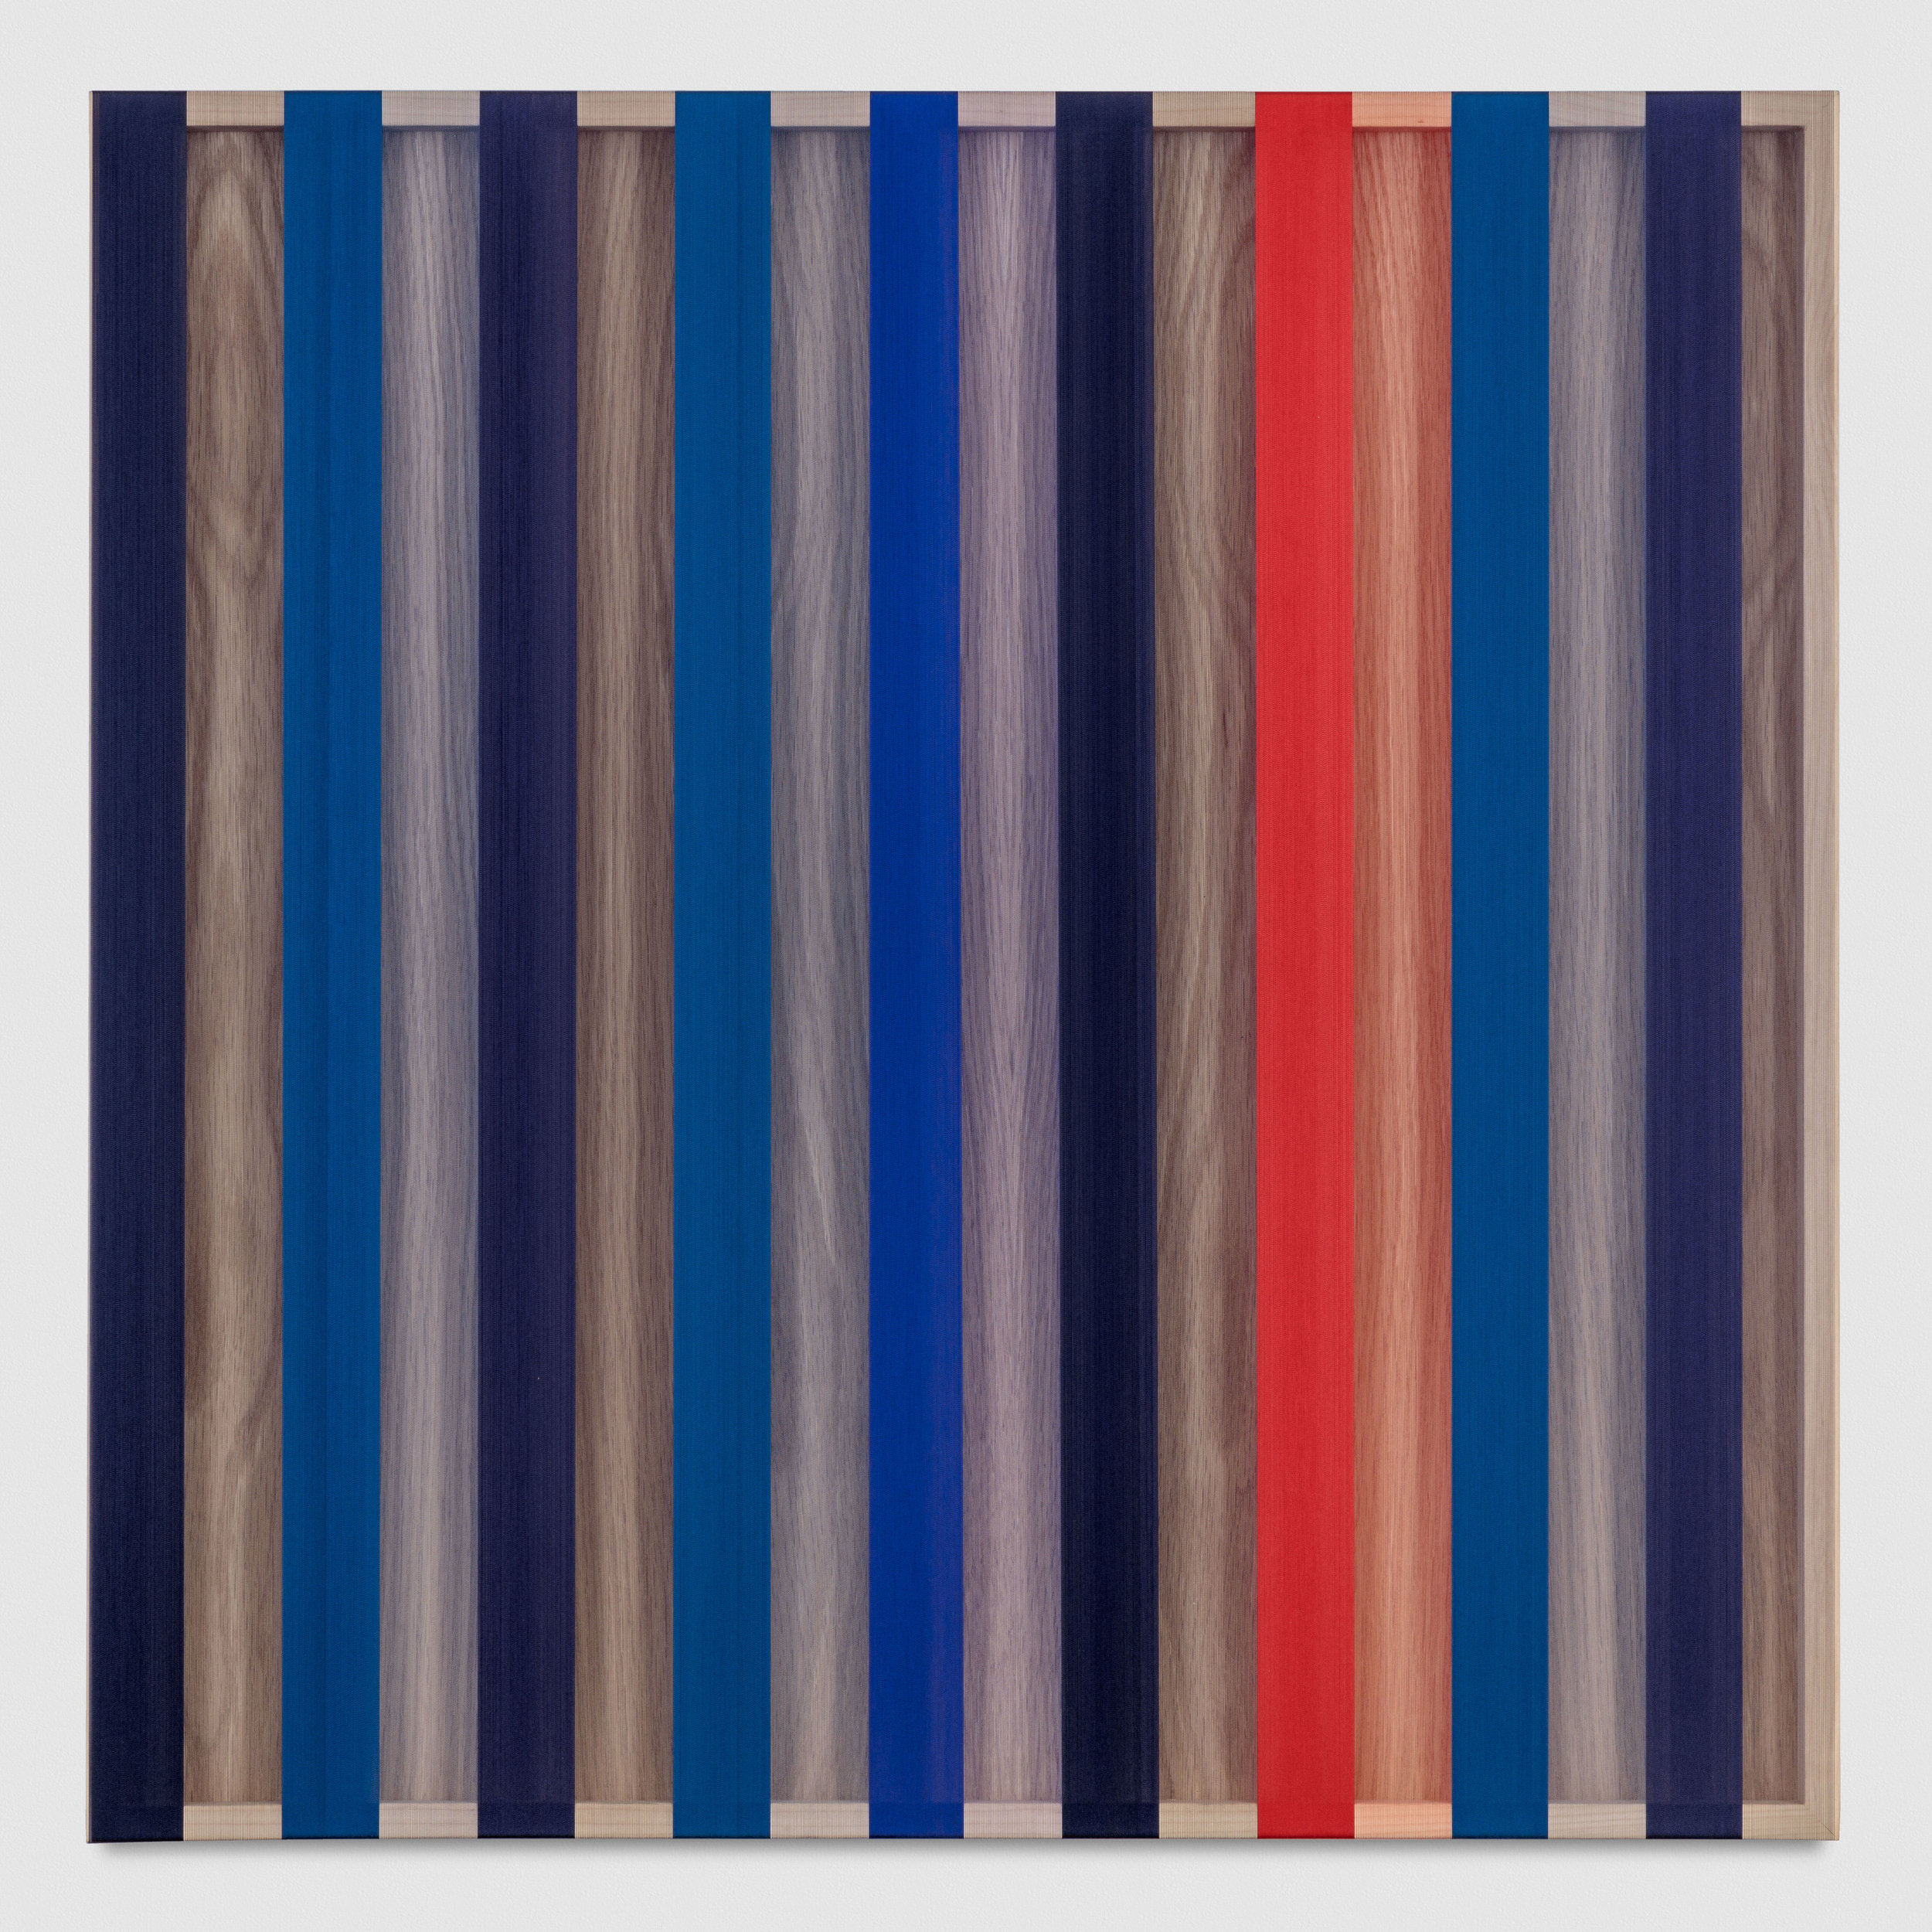 Untitled (Red and Blue banded hovering thread), 2017 single-strand rayon thread on vertical grain oak 91,5 x 91,5 cm - 36 x 36 inches